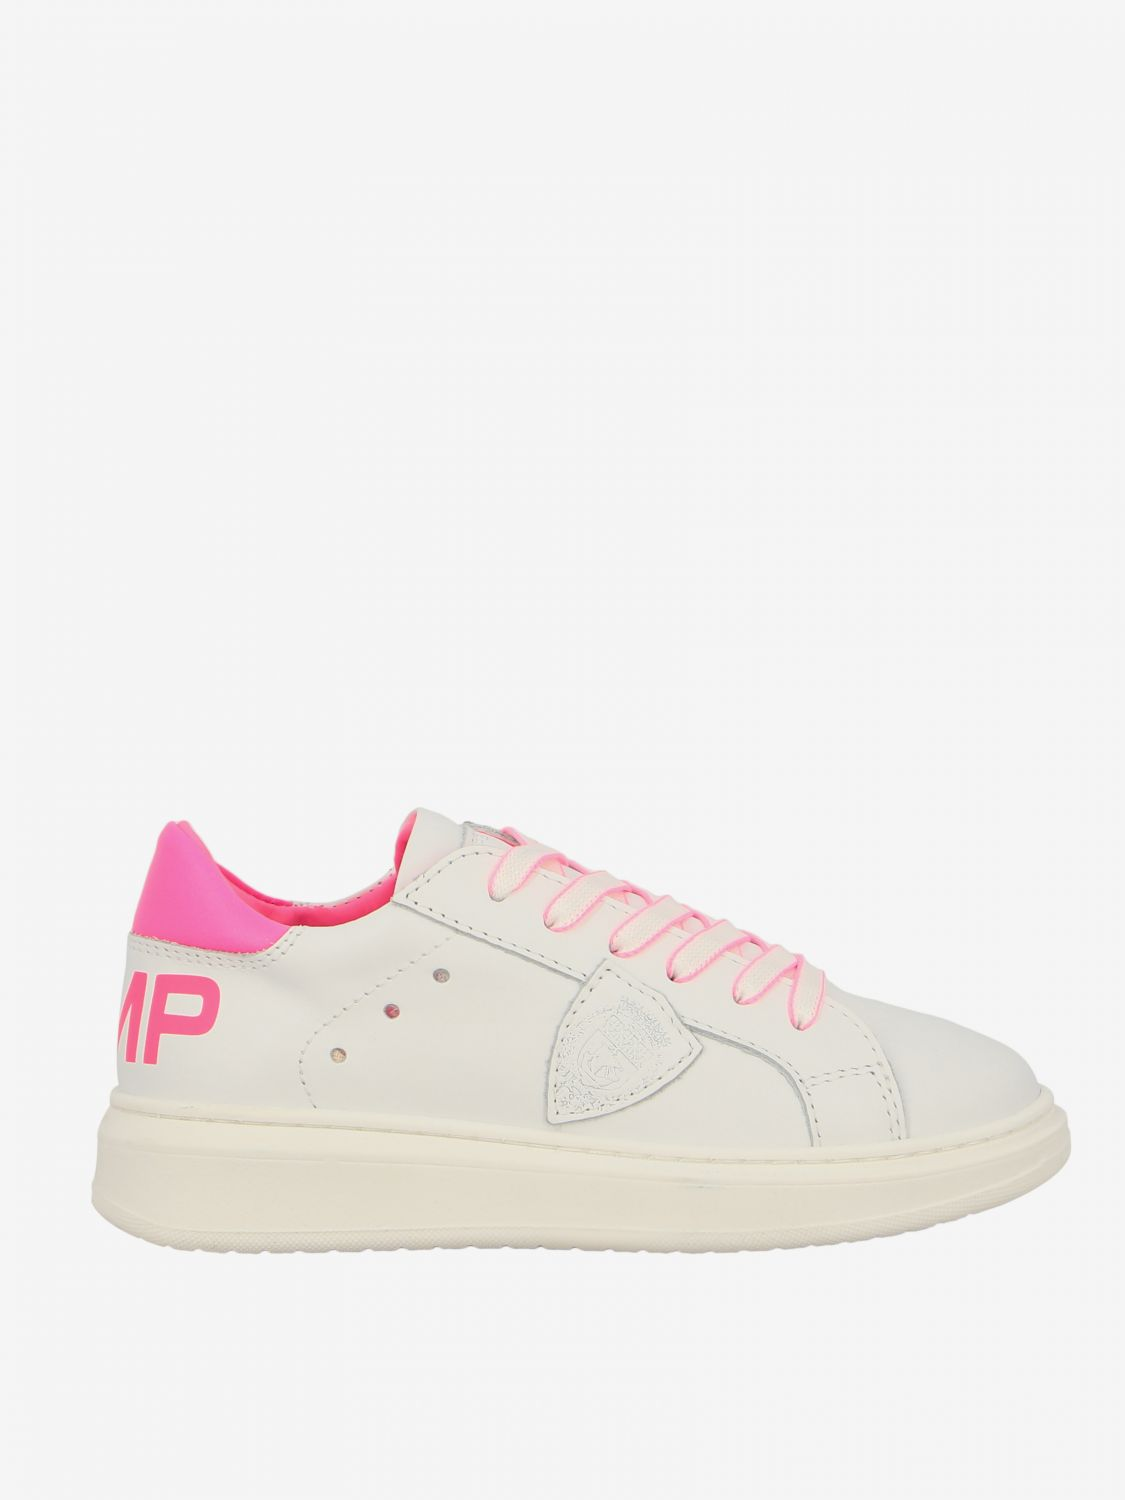 Shoes kids Philippe Model white 1